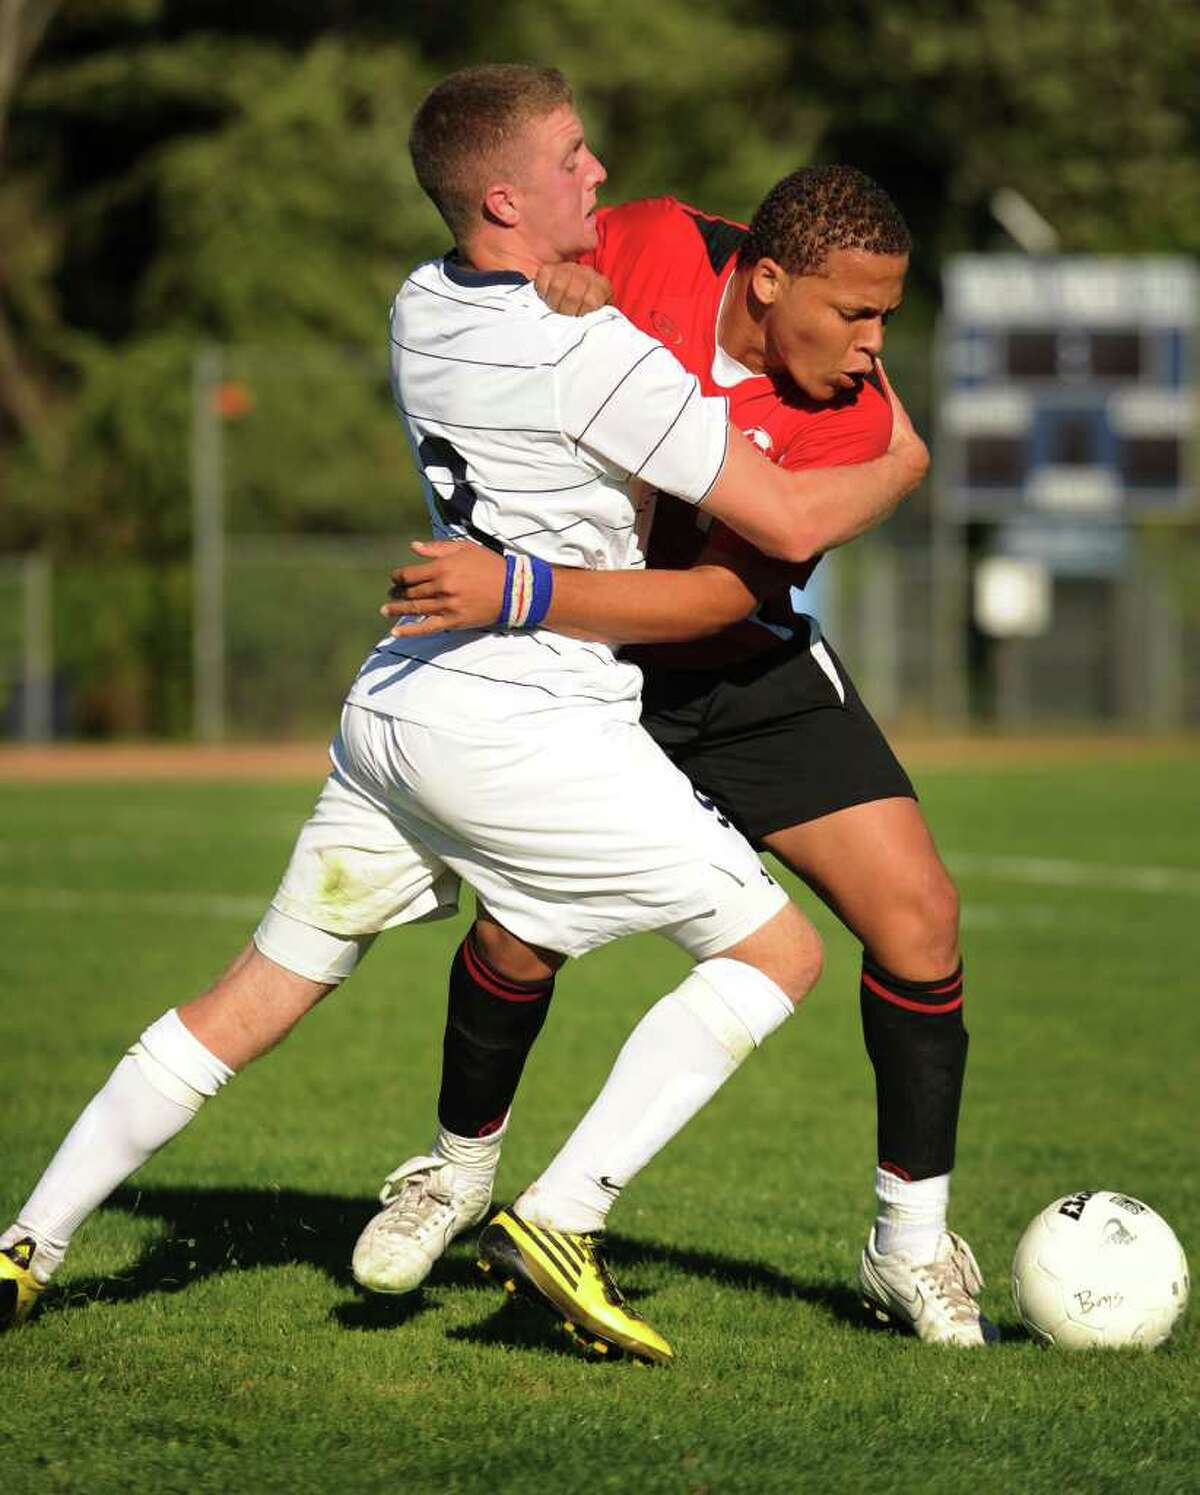 Staples' Brendan Lesch, left, and Bridgeport Central's Jenilo Soares, grapple as they look to play the ball during their FCIAC boys soccer matchup at Staples High School in Westport on Monday, September 20, 2010.